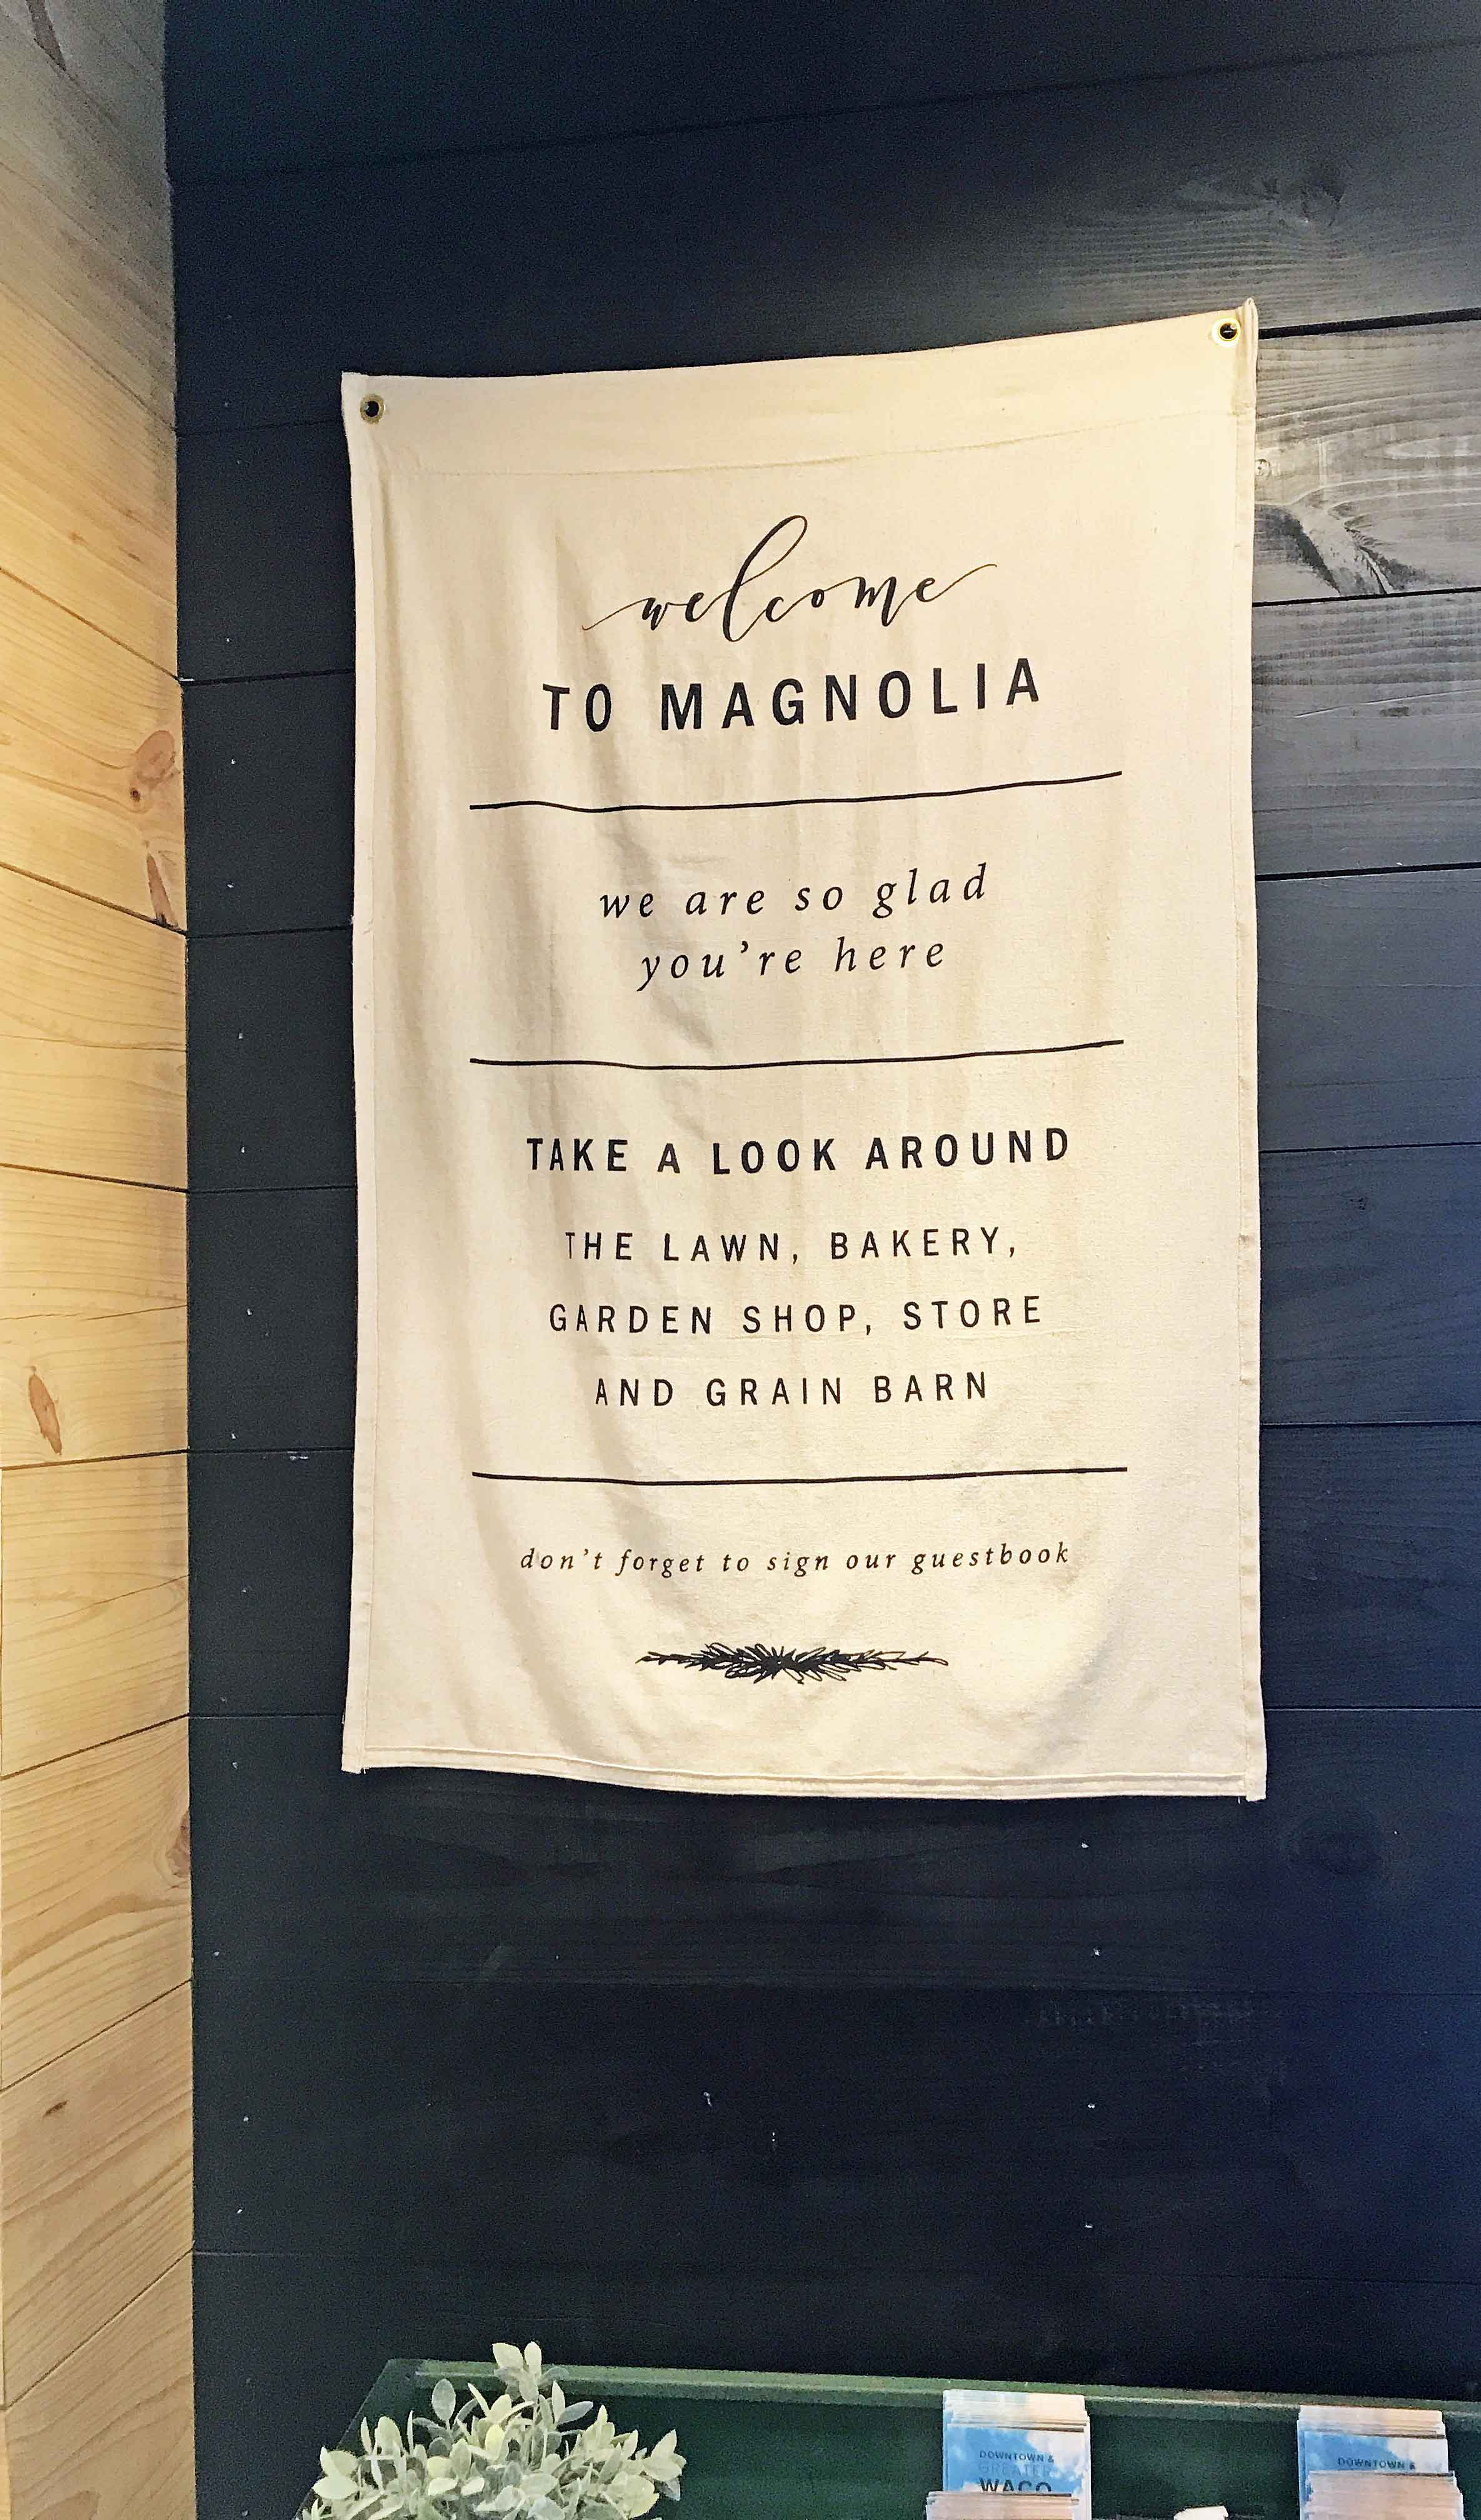 How to plan the perfect trip to Magnolia Market at the Silos in Waco Texas. Magnolia Market was created by HGTV's Fixer Upper favorite couple, Chip and Joanna Gaines. Visit Magnolia Market, Silo Baking Co. and the beautiful grounds. Tips for planning a trip to Magnolia Market. www.modernhoney.com